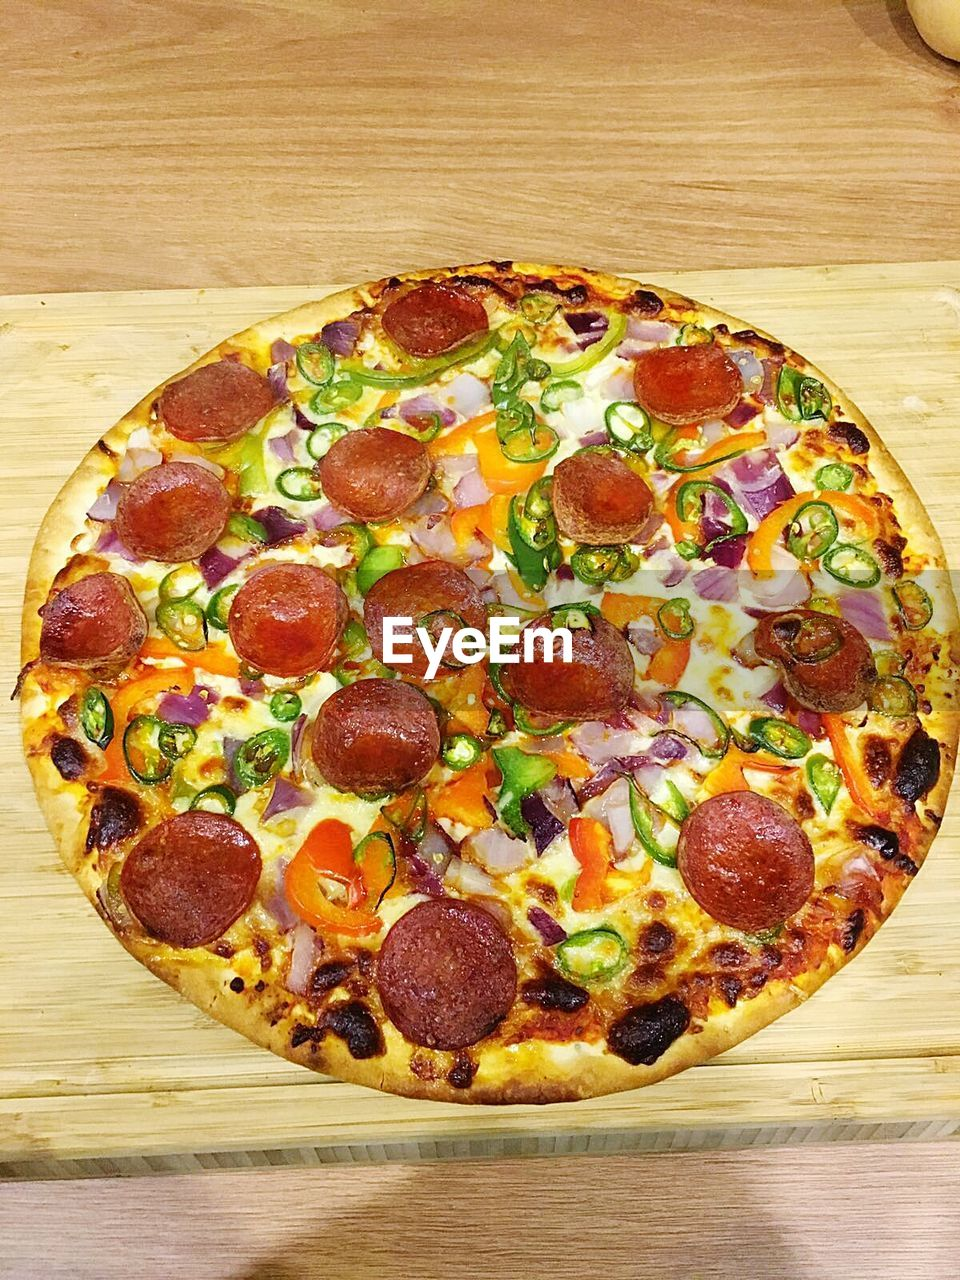 pizza, food and drink, food, table, freshness, unhealthy eating, ready-to-eat, still life, indoors, high angle view, wood - material, fast food, no people, olive, sausage, vegetable, dairy product, pepperoni, cheese, indulgence, temptation, pepperoni pizza, snack